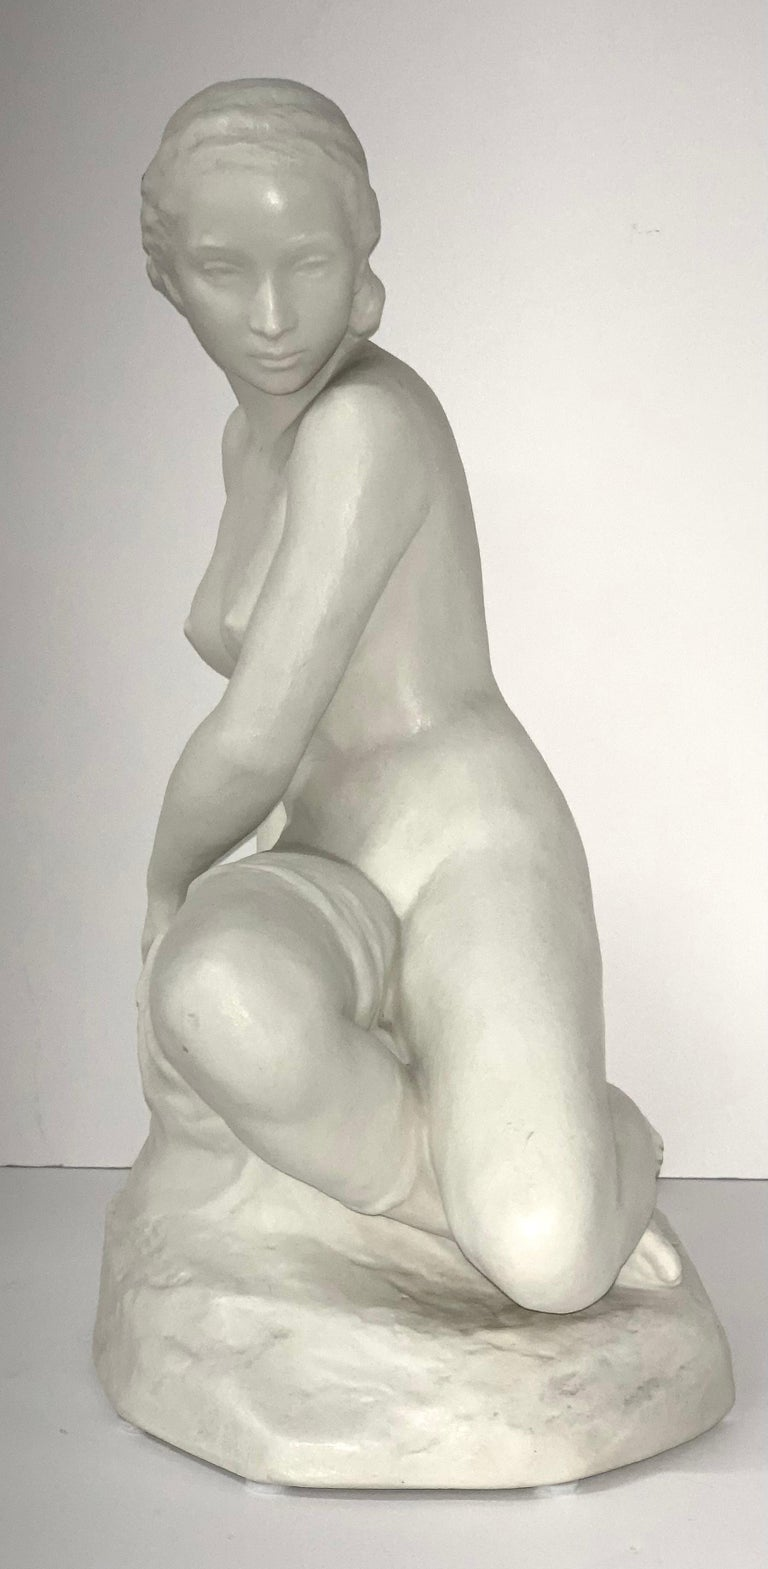 A nice porcelain or parian type figurine of a nude female by Rudolf Kaesbach for Rosenthal. In very good condition signed on the base and marked Rosenthal on the bottom. It is 12 inches tall and approximately 8 inches wide and 6 inches deep.